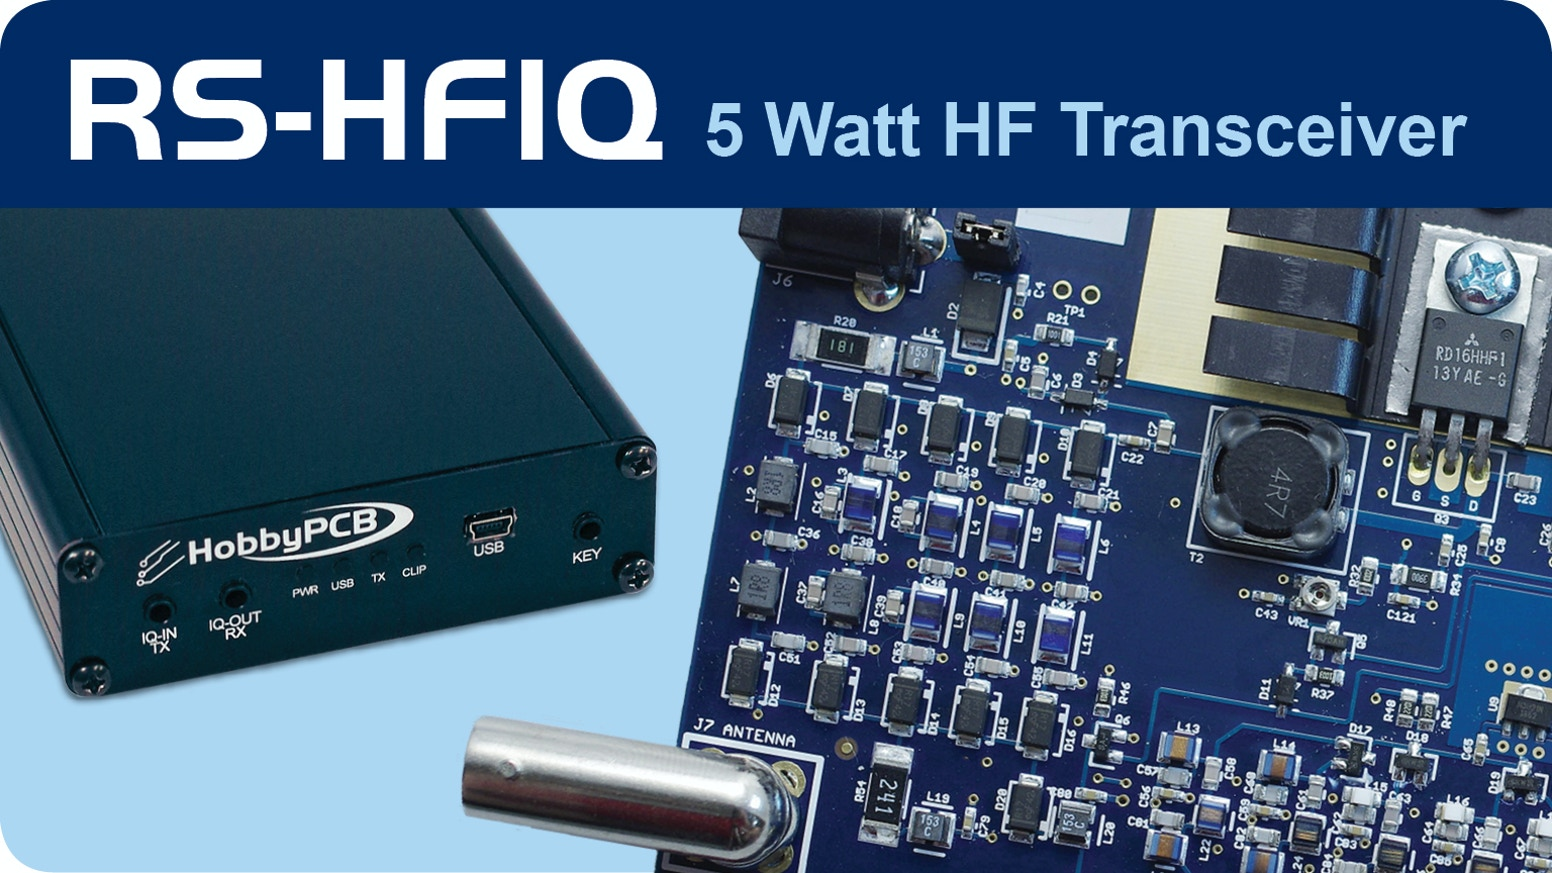 RS-HFIQ 5W Software Defined Radio (SDR) Tranceiver by HobbyPCB LLC